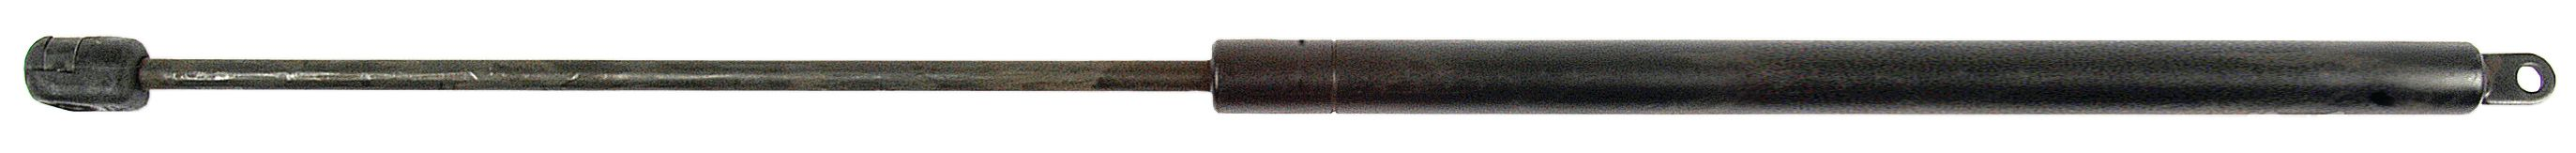 FORD NEW HOLLAND GAS STRUT 52927